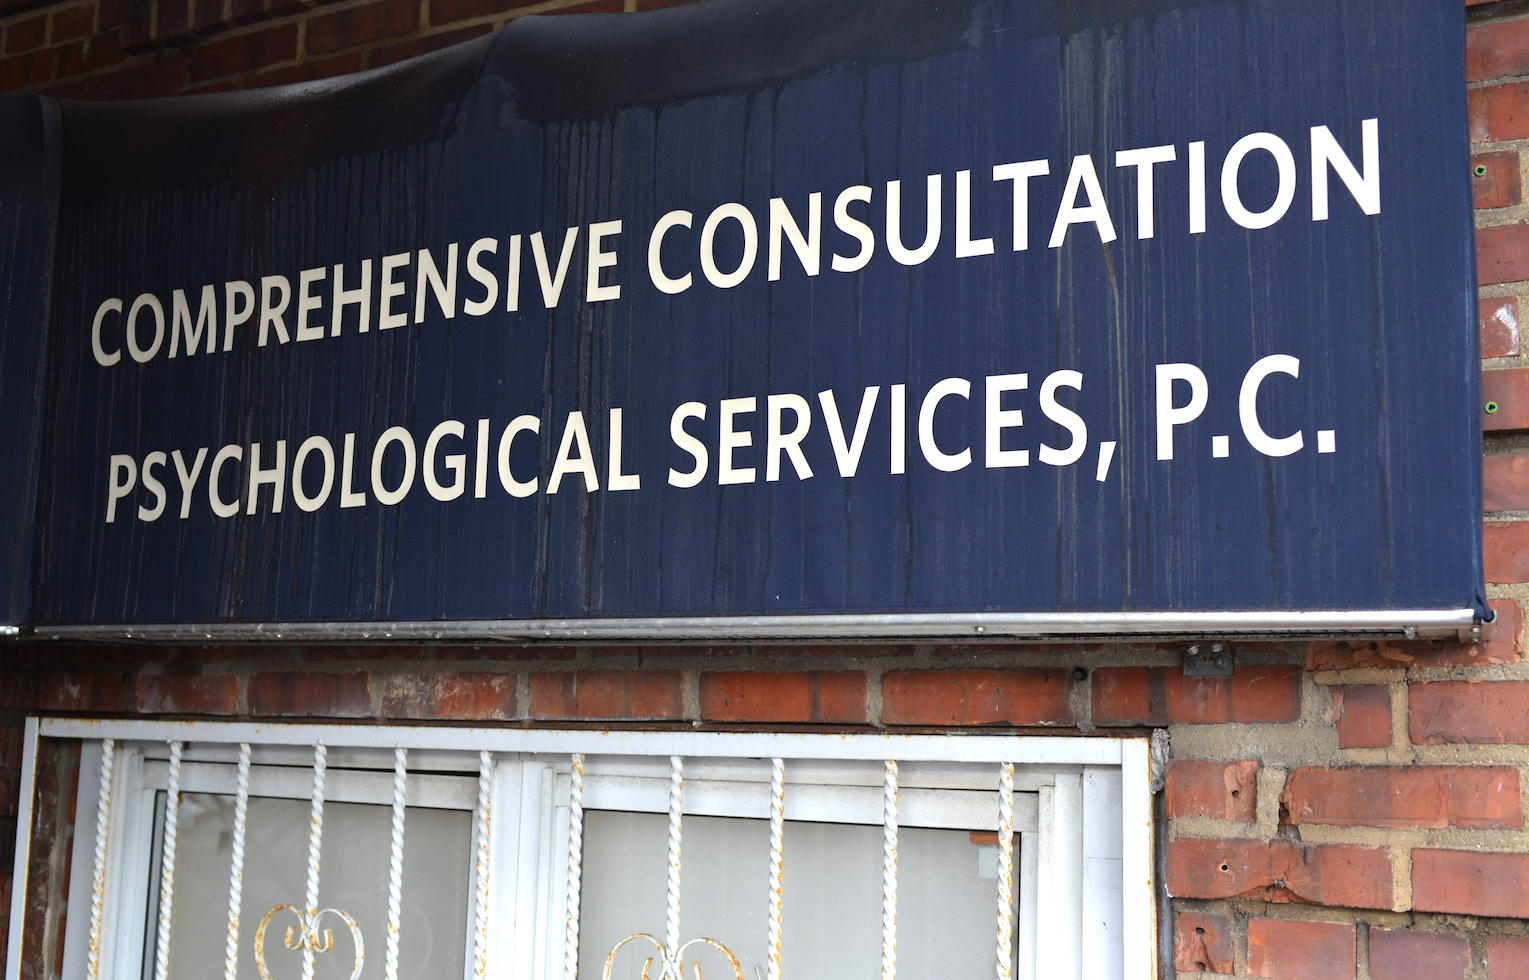 Comprehensive Consultation Psychological Services exterior